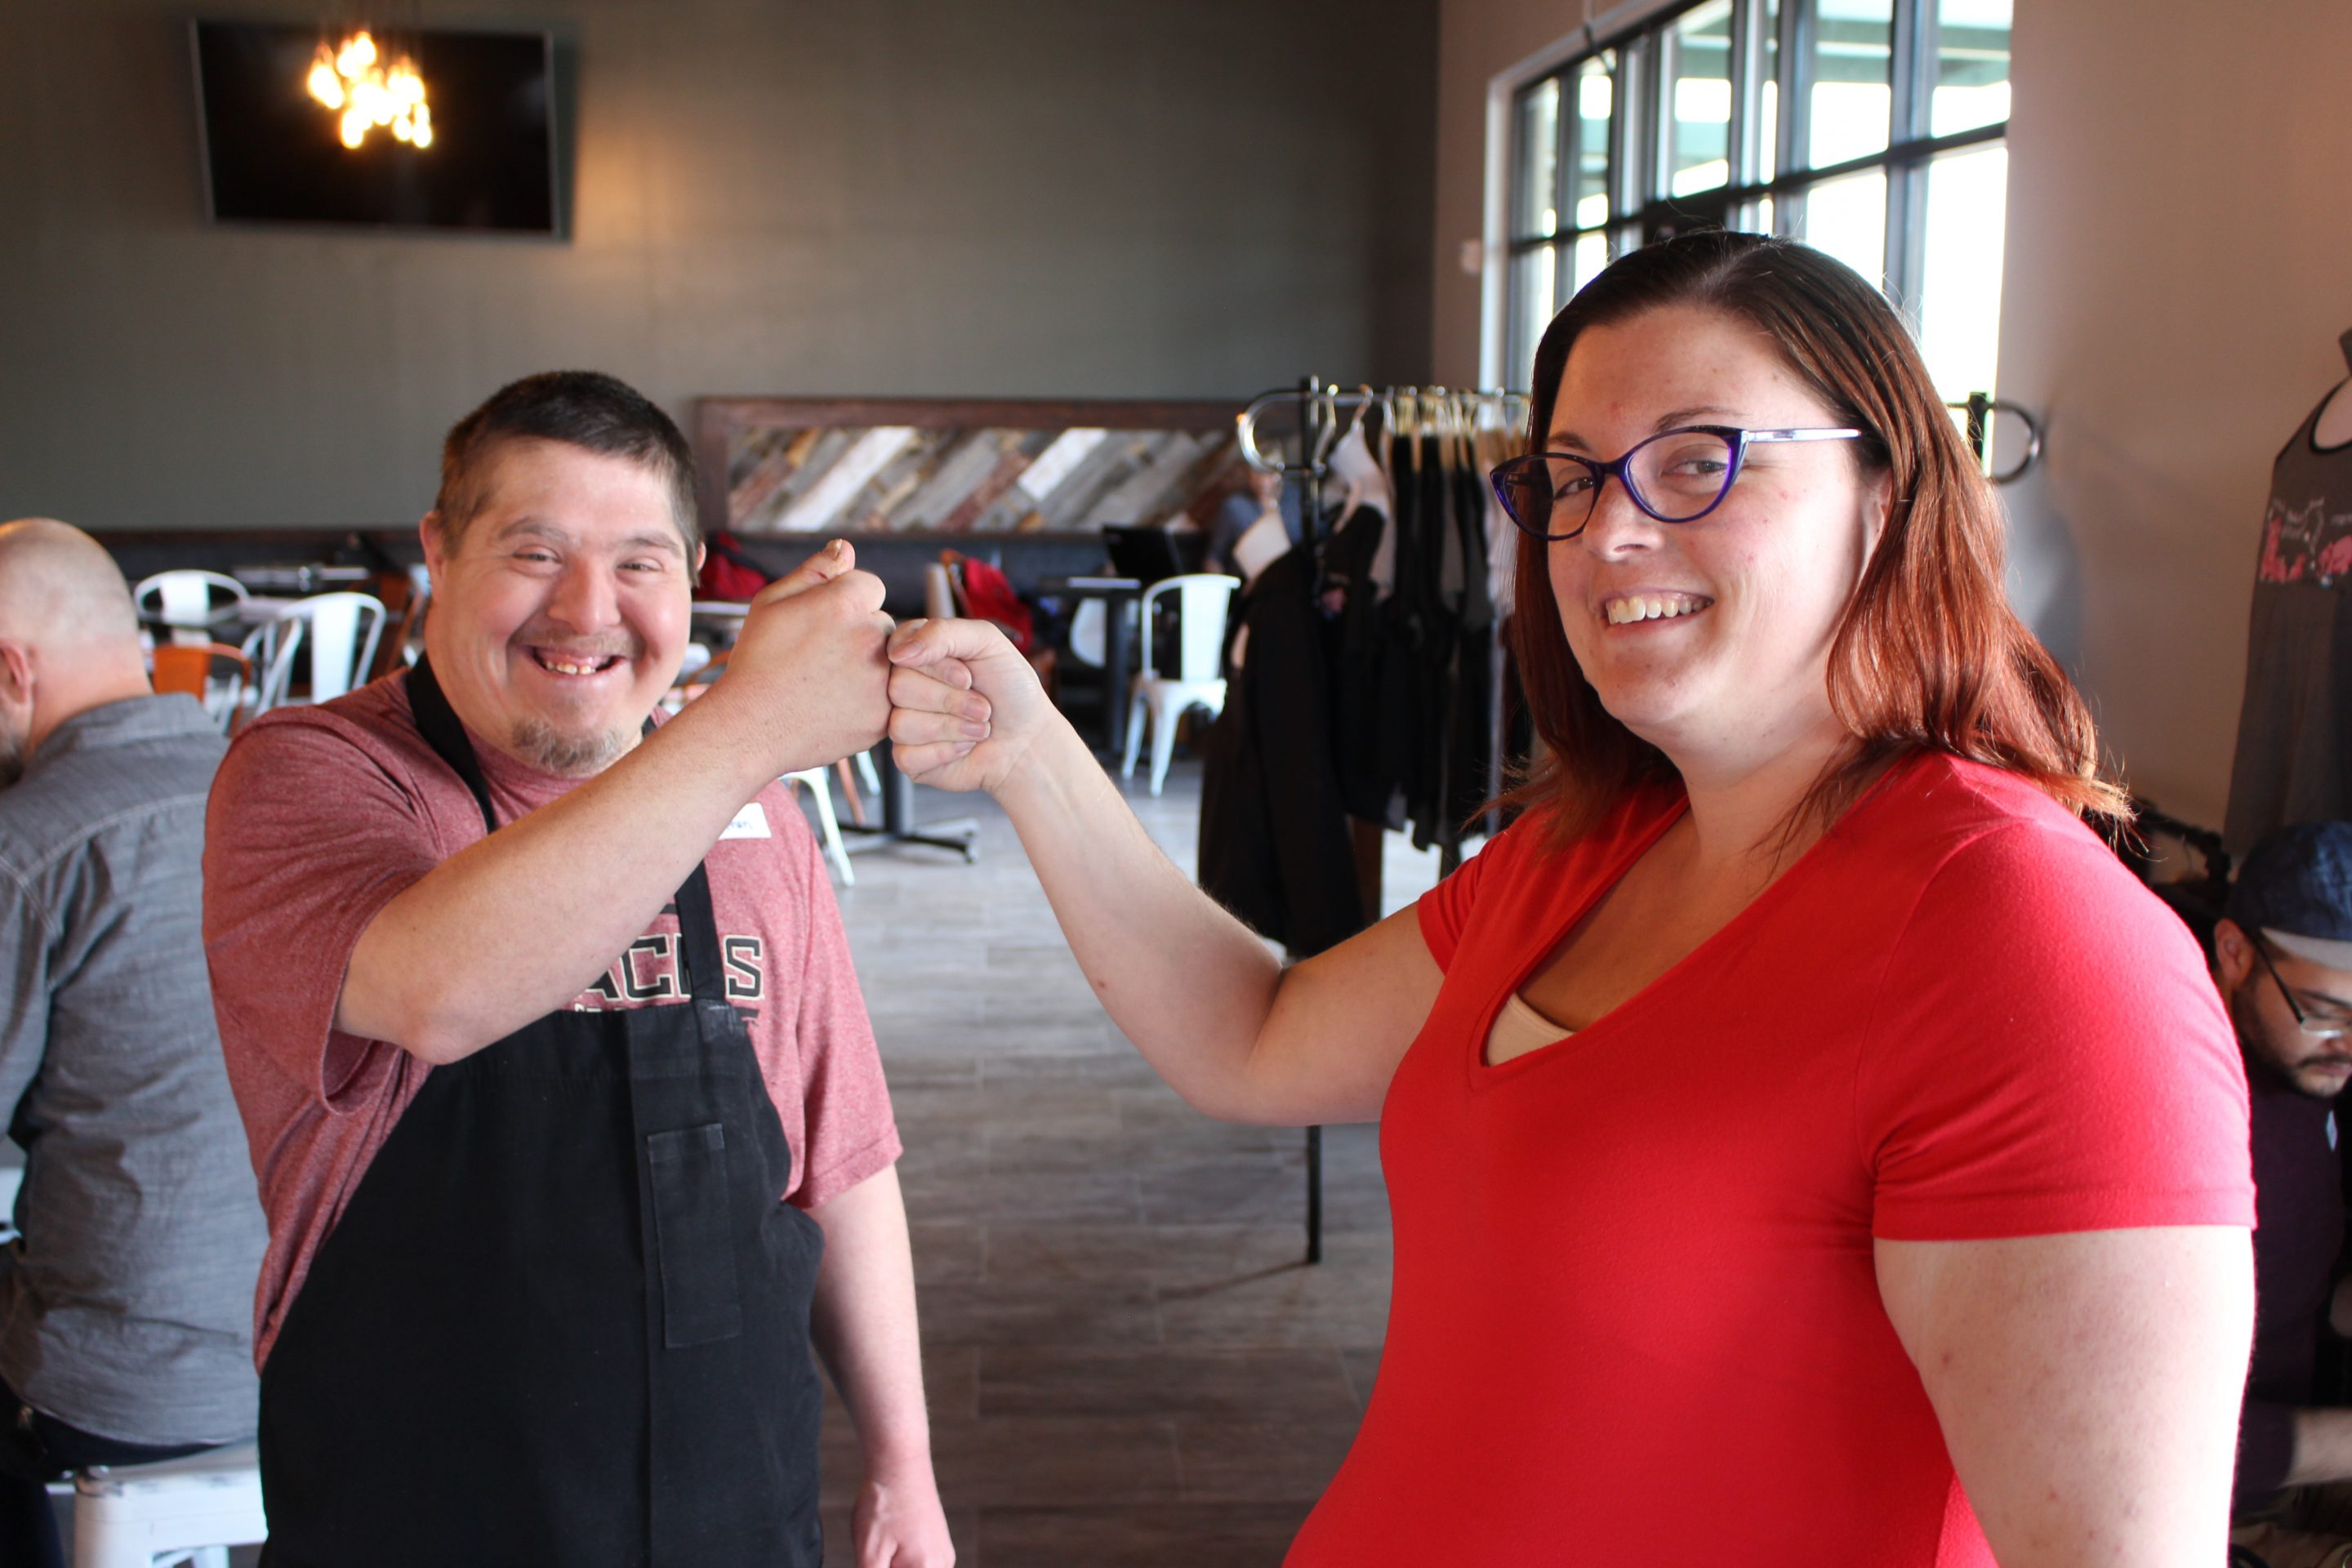 A man and a woman fist bump and smile for the camera. The man, Stephen, just started his job working at a local restaurant.  Sarah supported him in being hired.